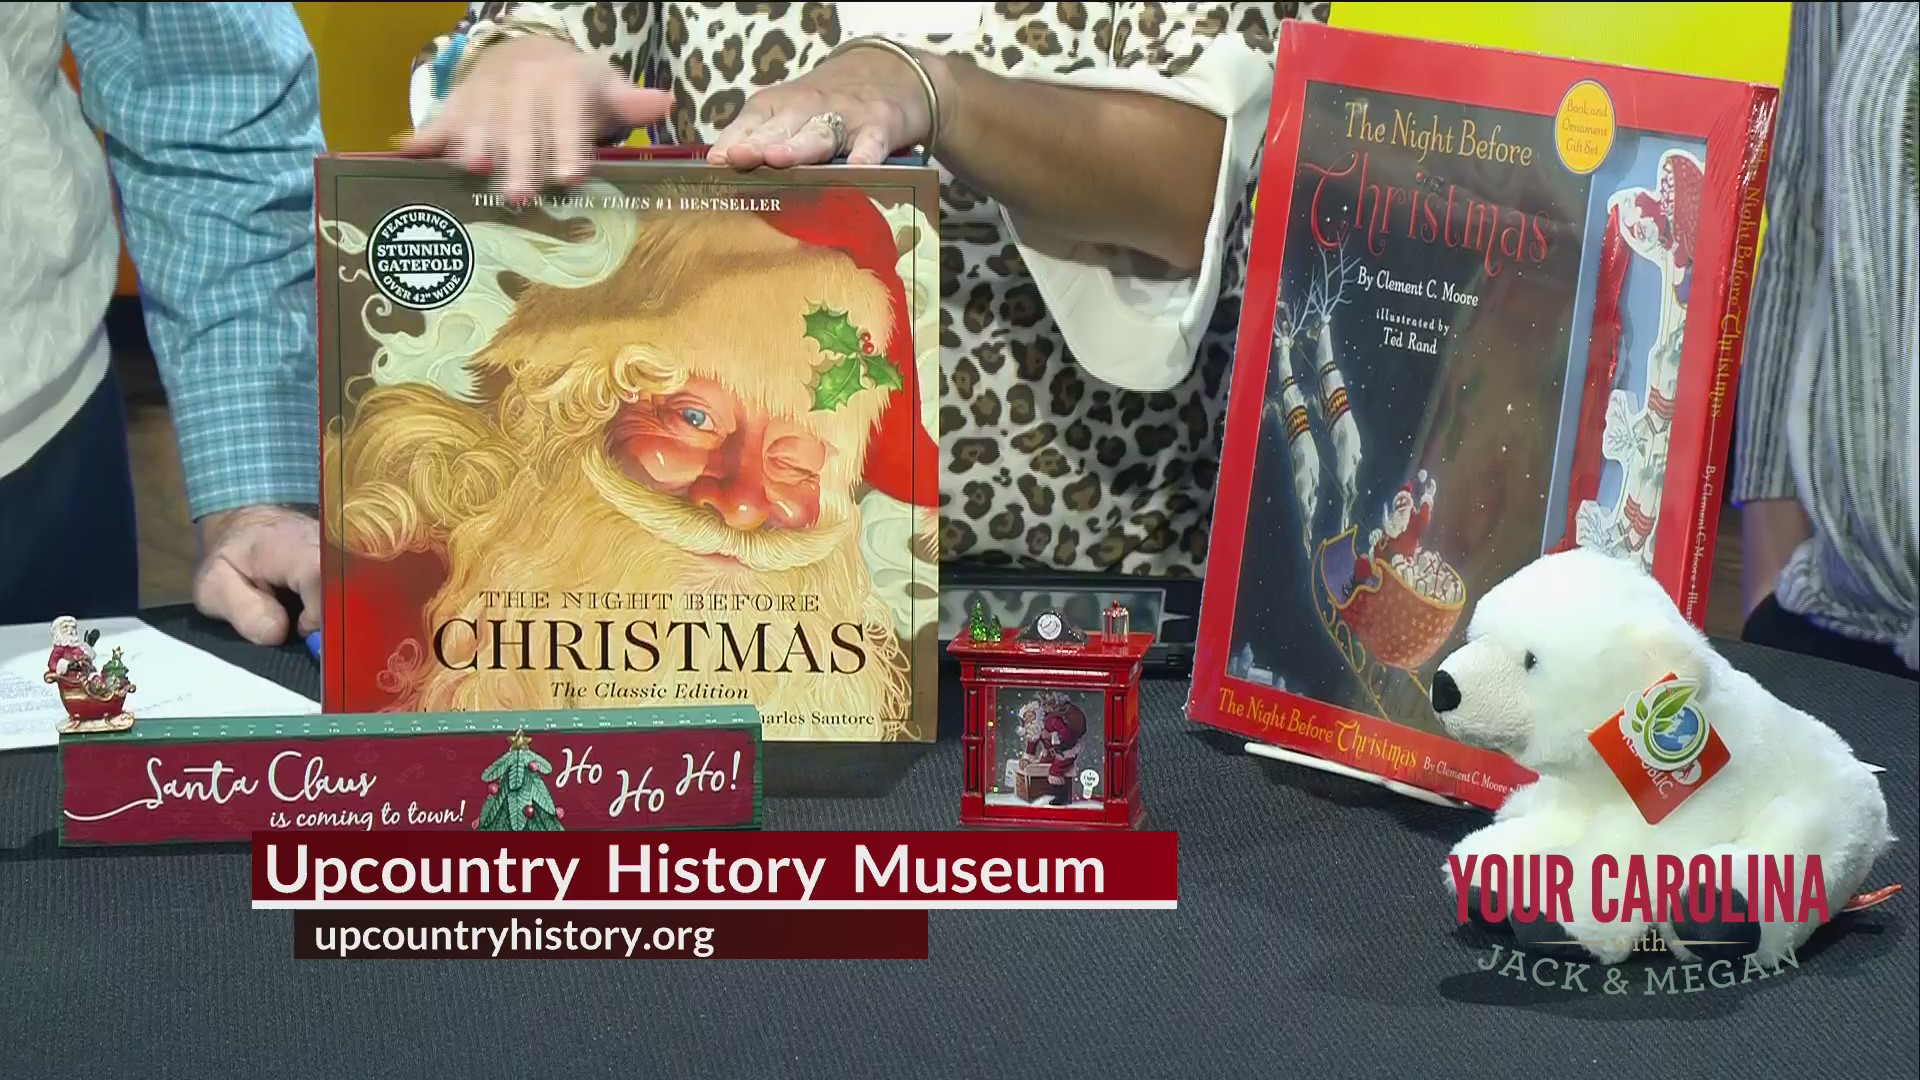 A New Holiday Exhibition At The Upcountry History Museum